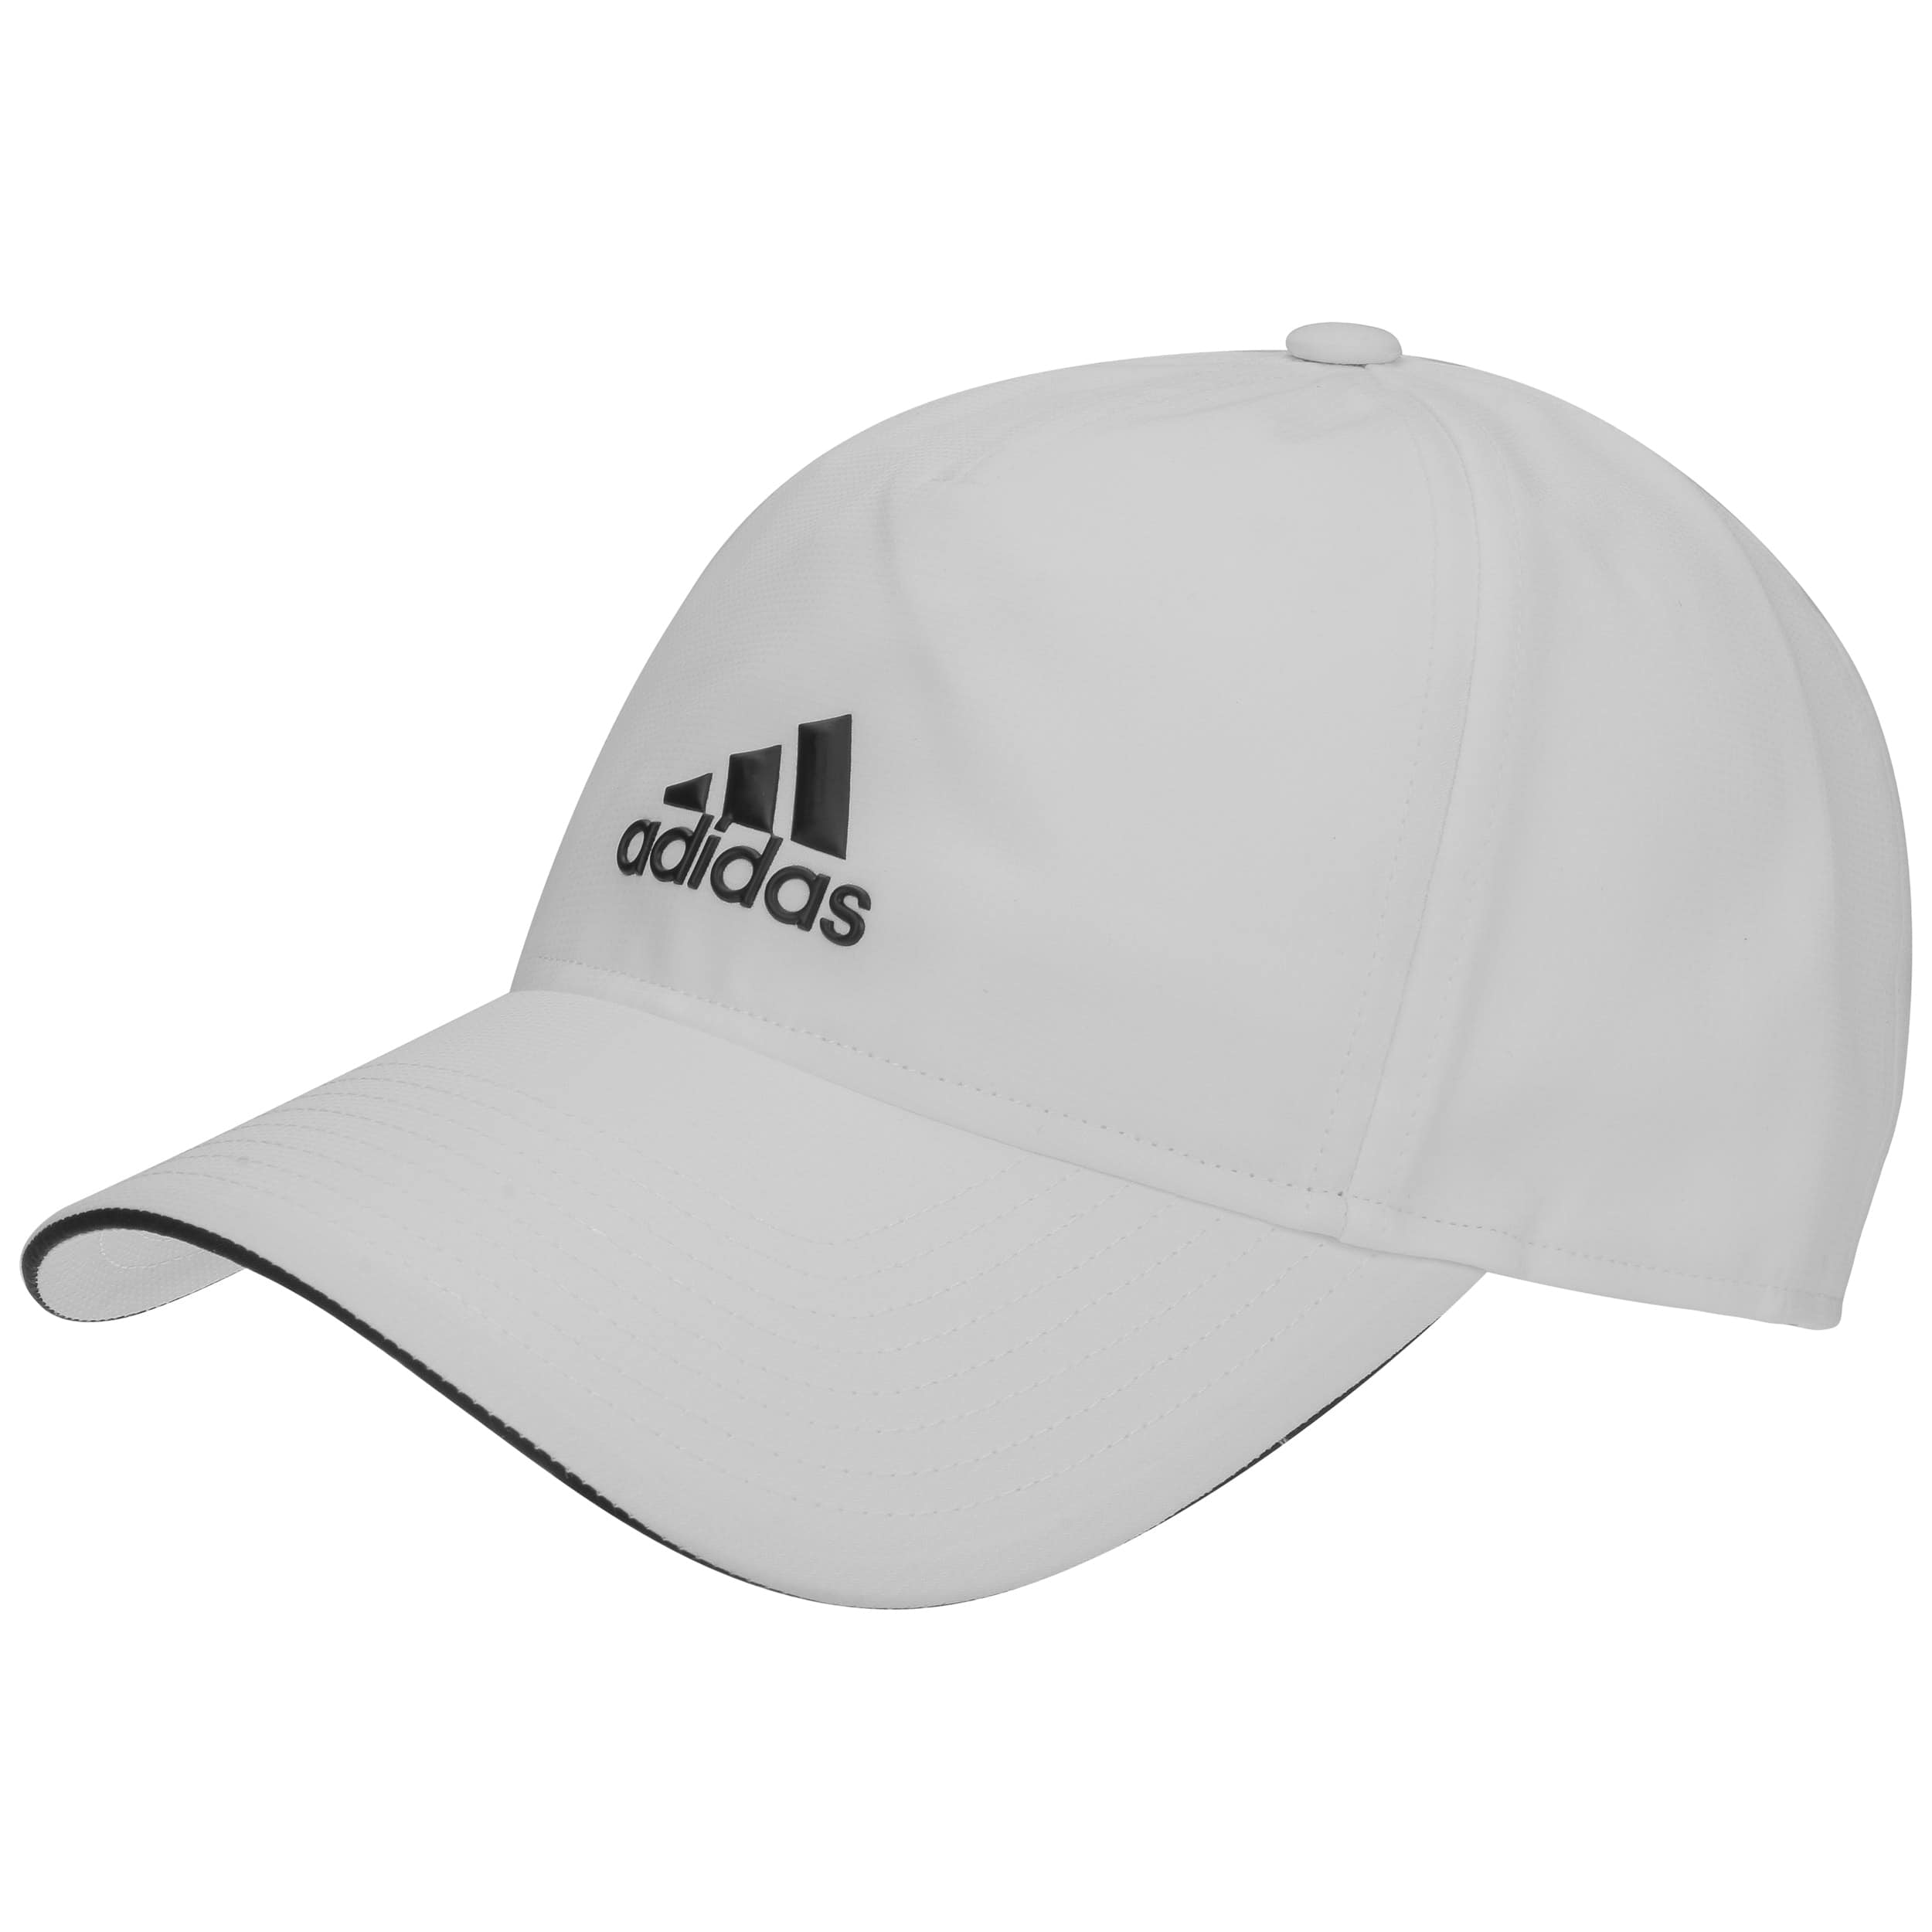 ... Classic Climalite Strapback Cap by adidas - white 5 ce42047216bc